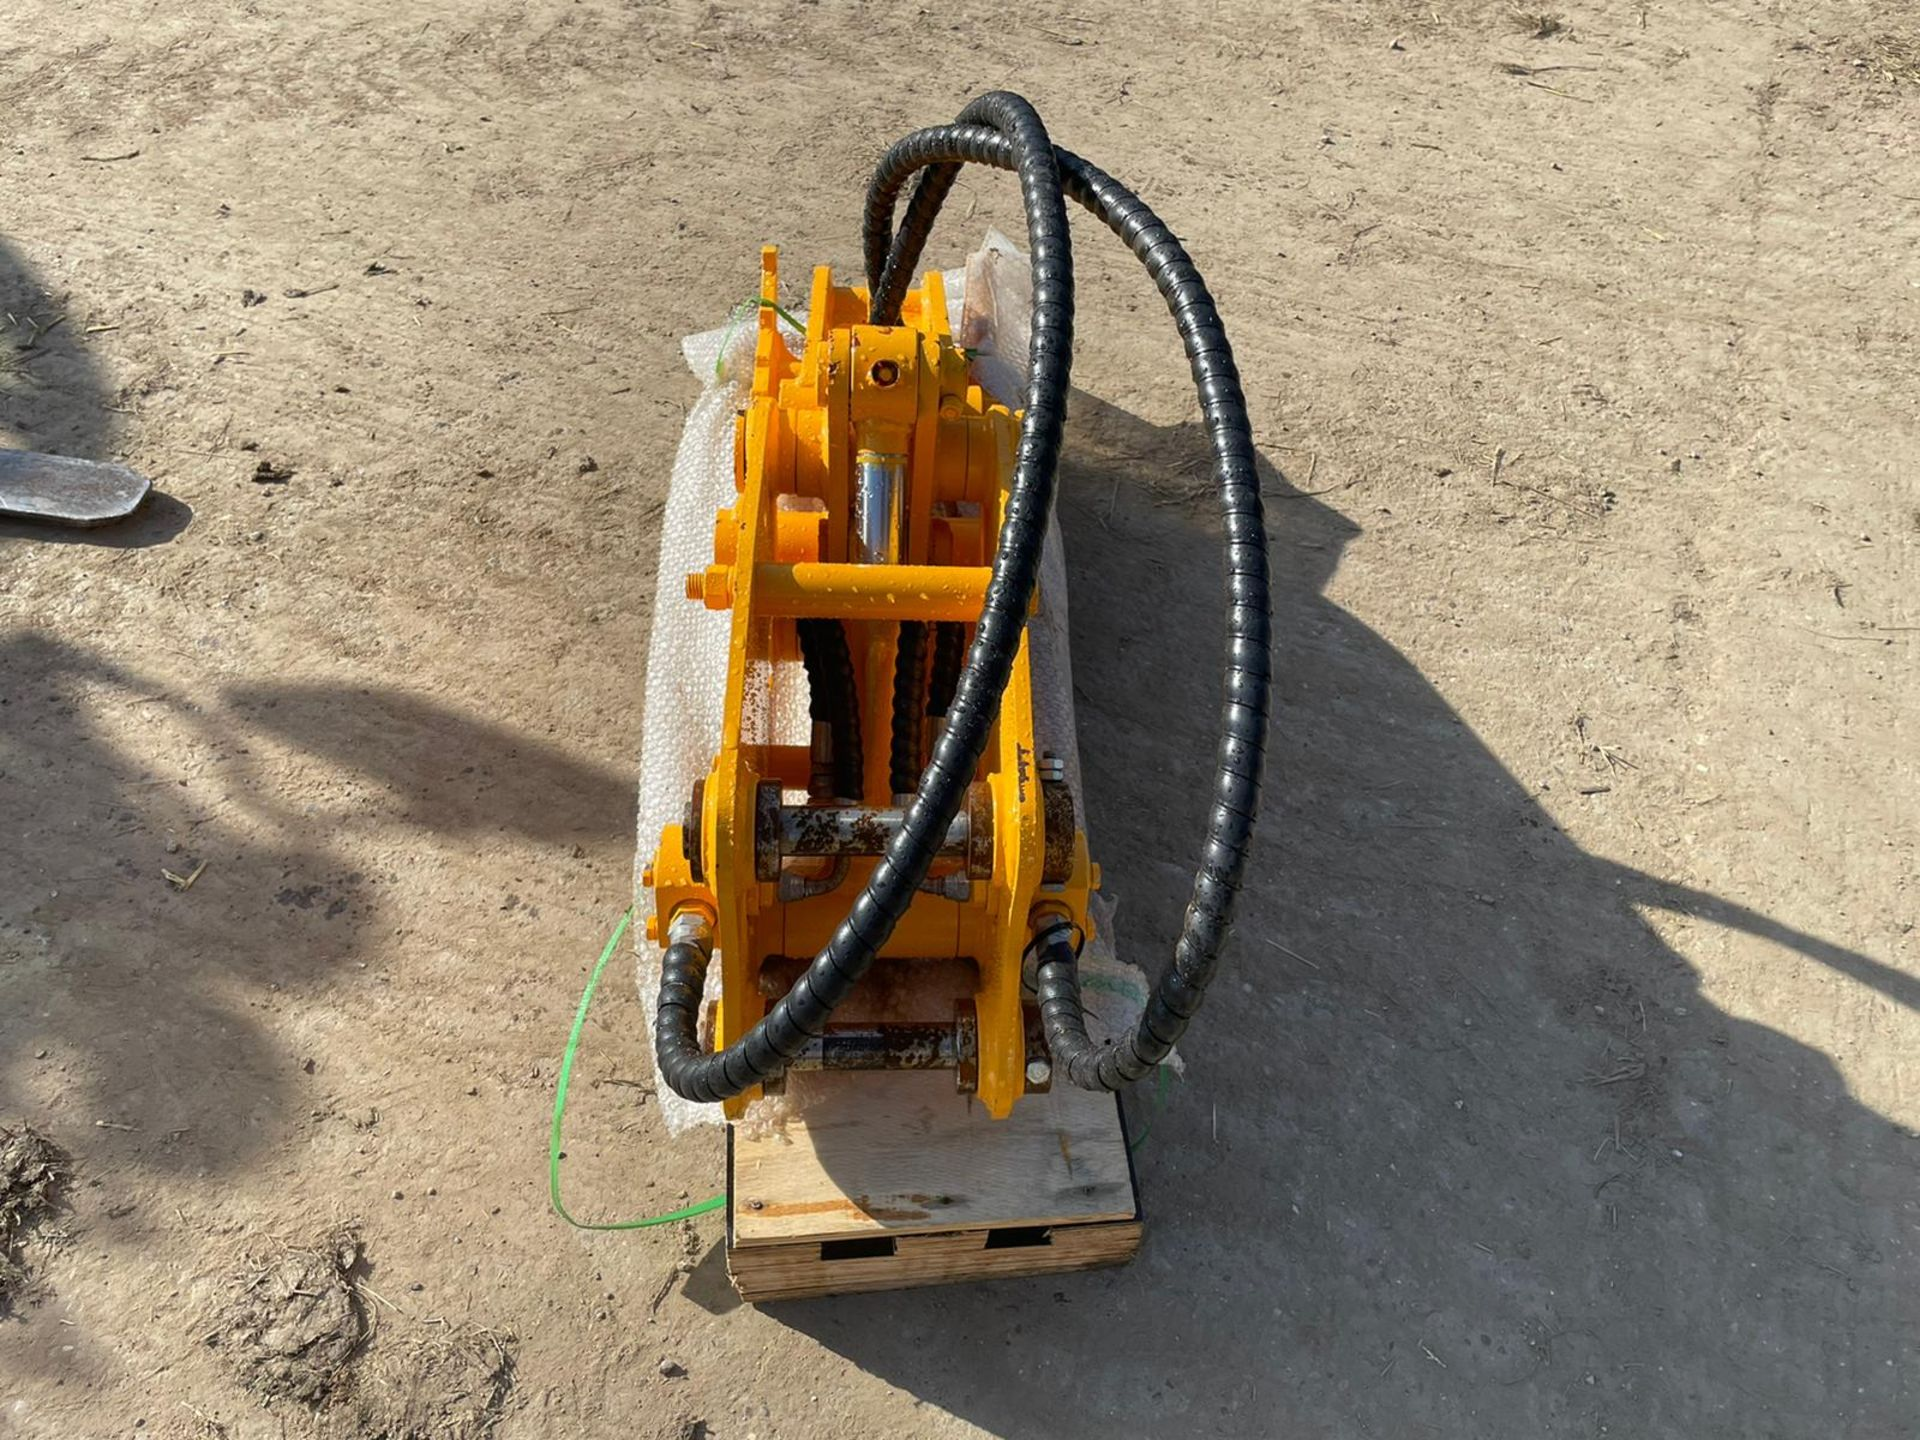 BRAND NEW AND UNUSED FINGER GRAB, HYDRAULIC DRIVEN, 35MM PINS *PLUS VAT* - Image 2 of 4